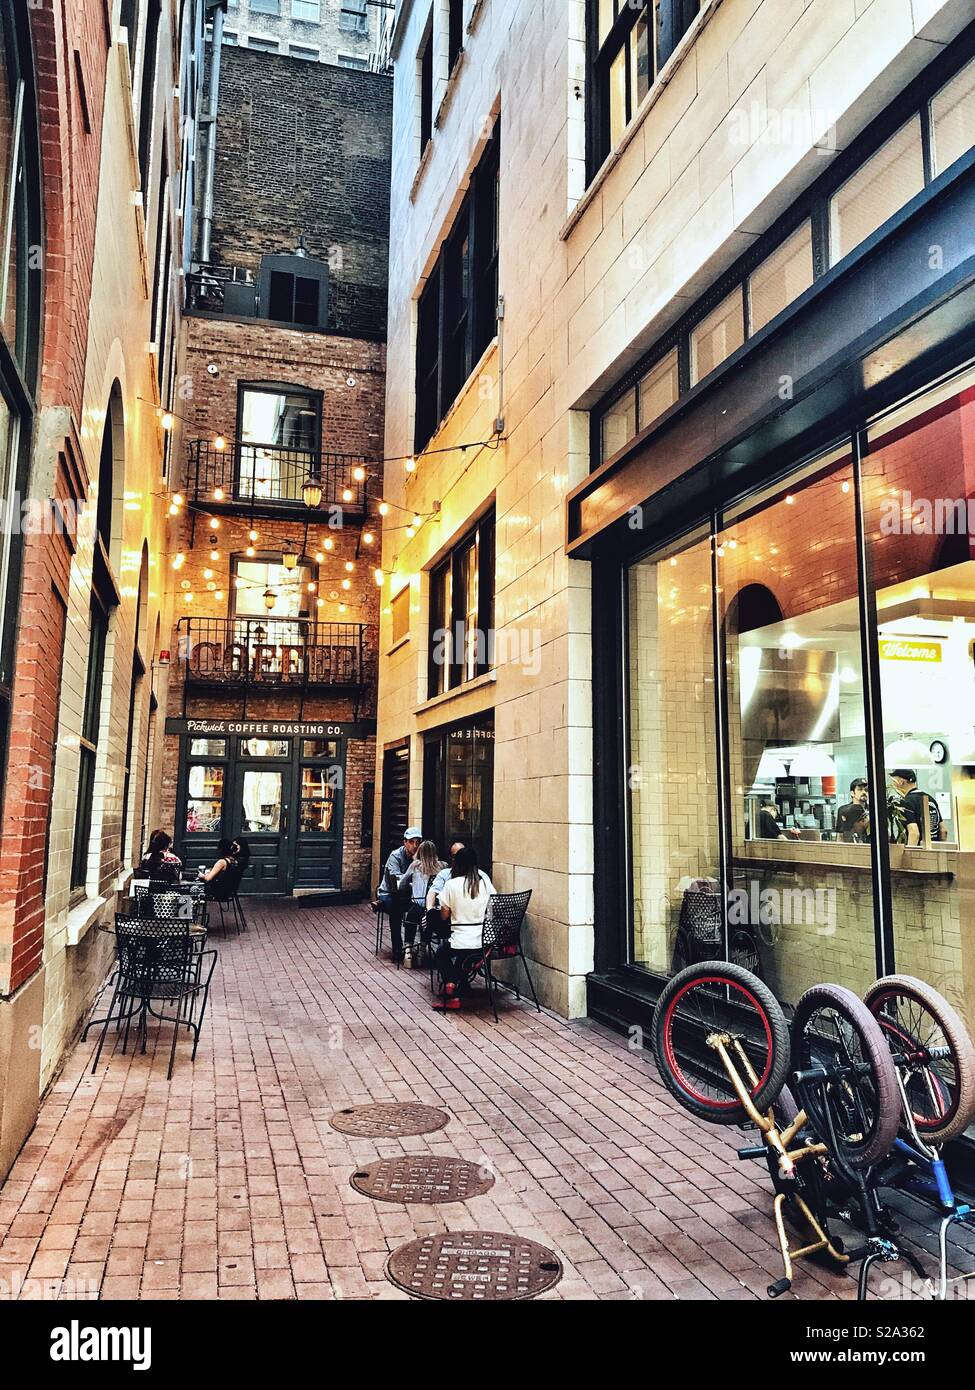 Coffee Shop with Outside Seating Between Two Buildings in Downtown Chicago - Stock Image